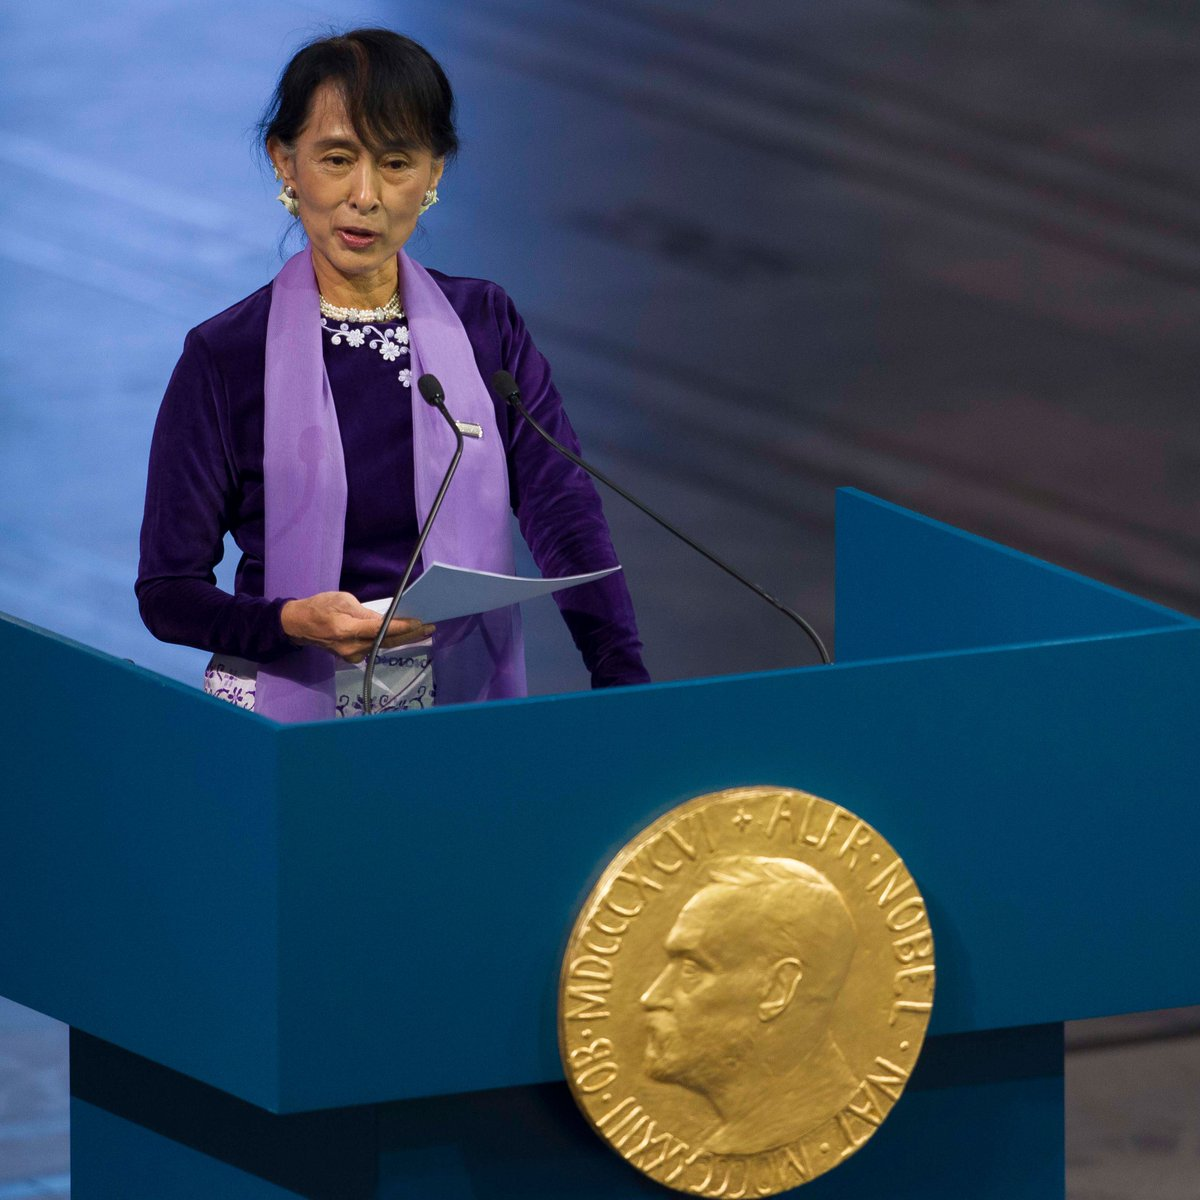 Over 366,000 people have signed a petition demanding Aung San Suu Kyi's Nobel Peace Prize be revoked over violence against Rohingya Muslims.